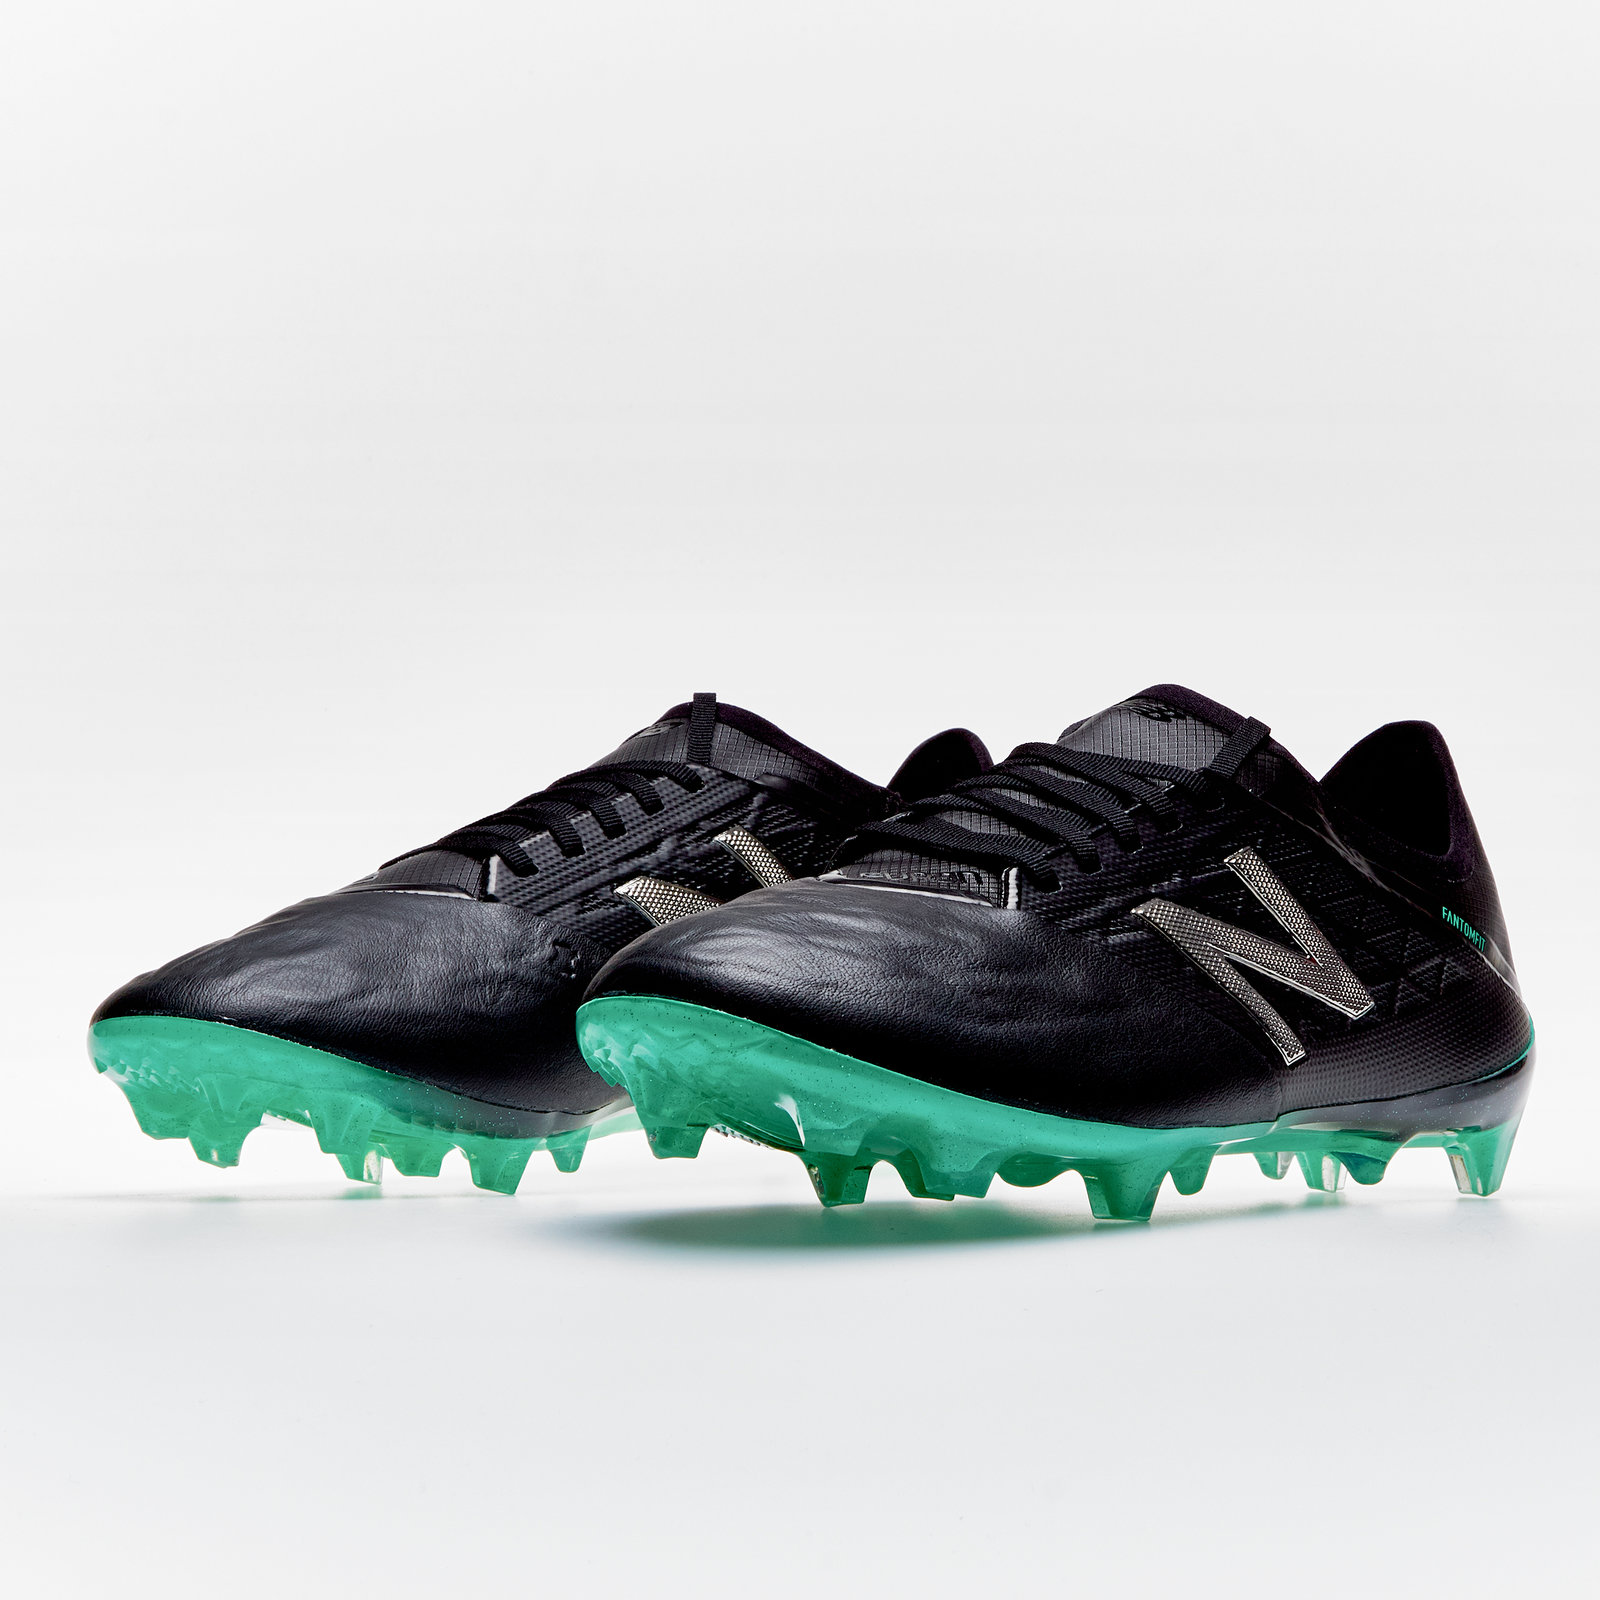 de62c4e94 New Balance Mens Furon V5 Pro FG Leather Football Boots Studs Trainers Shoes